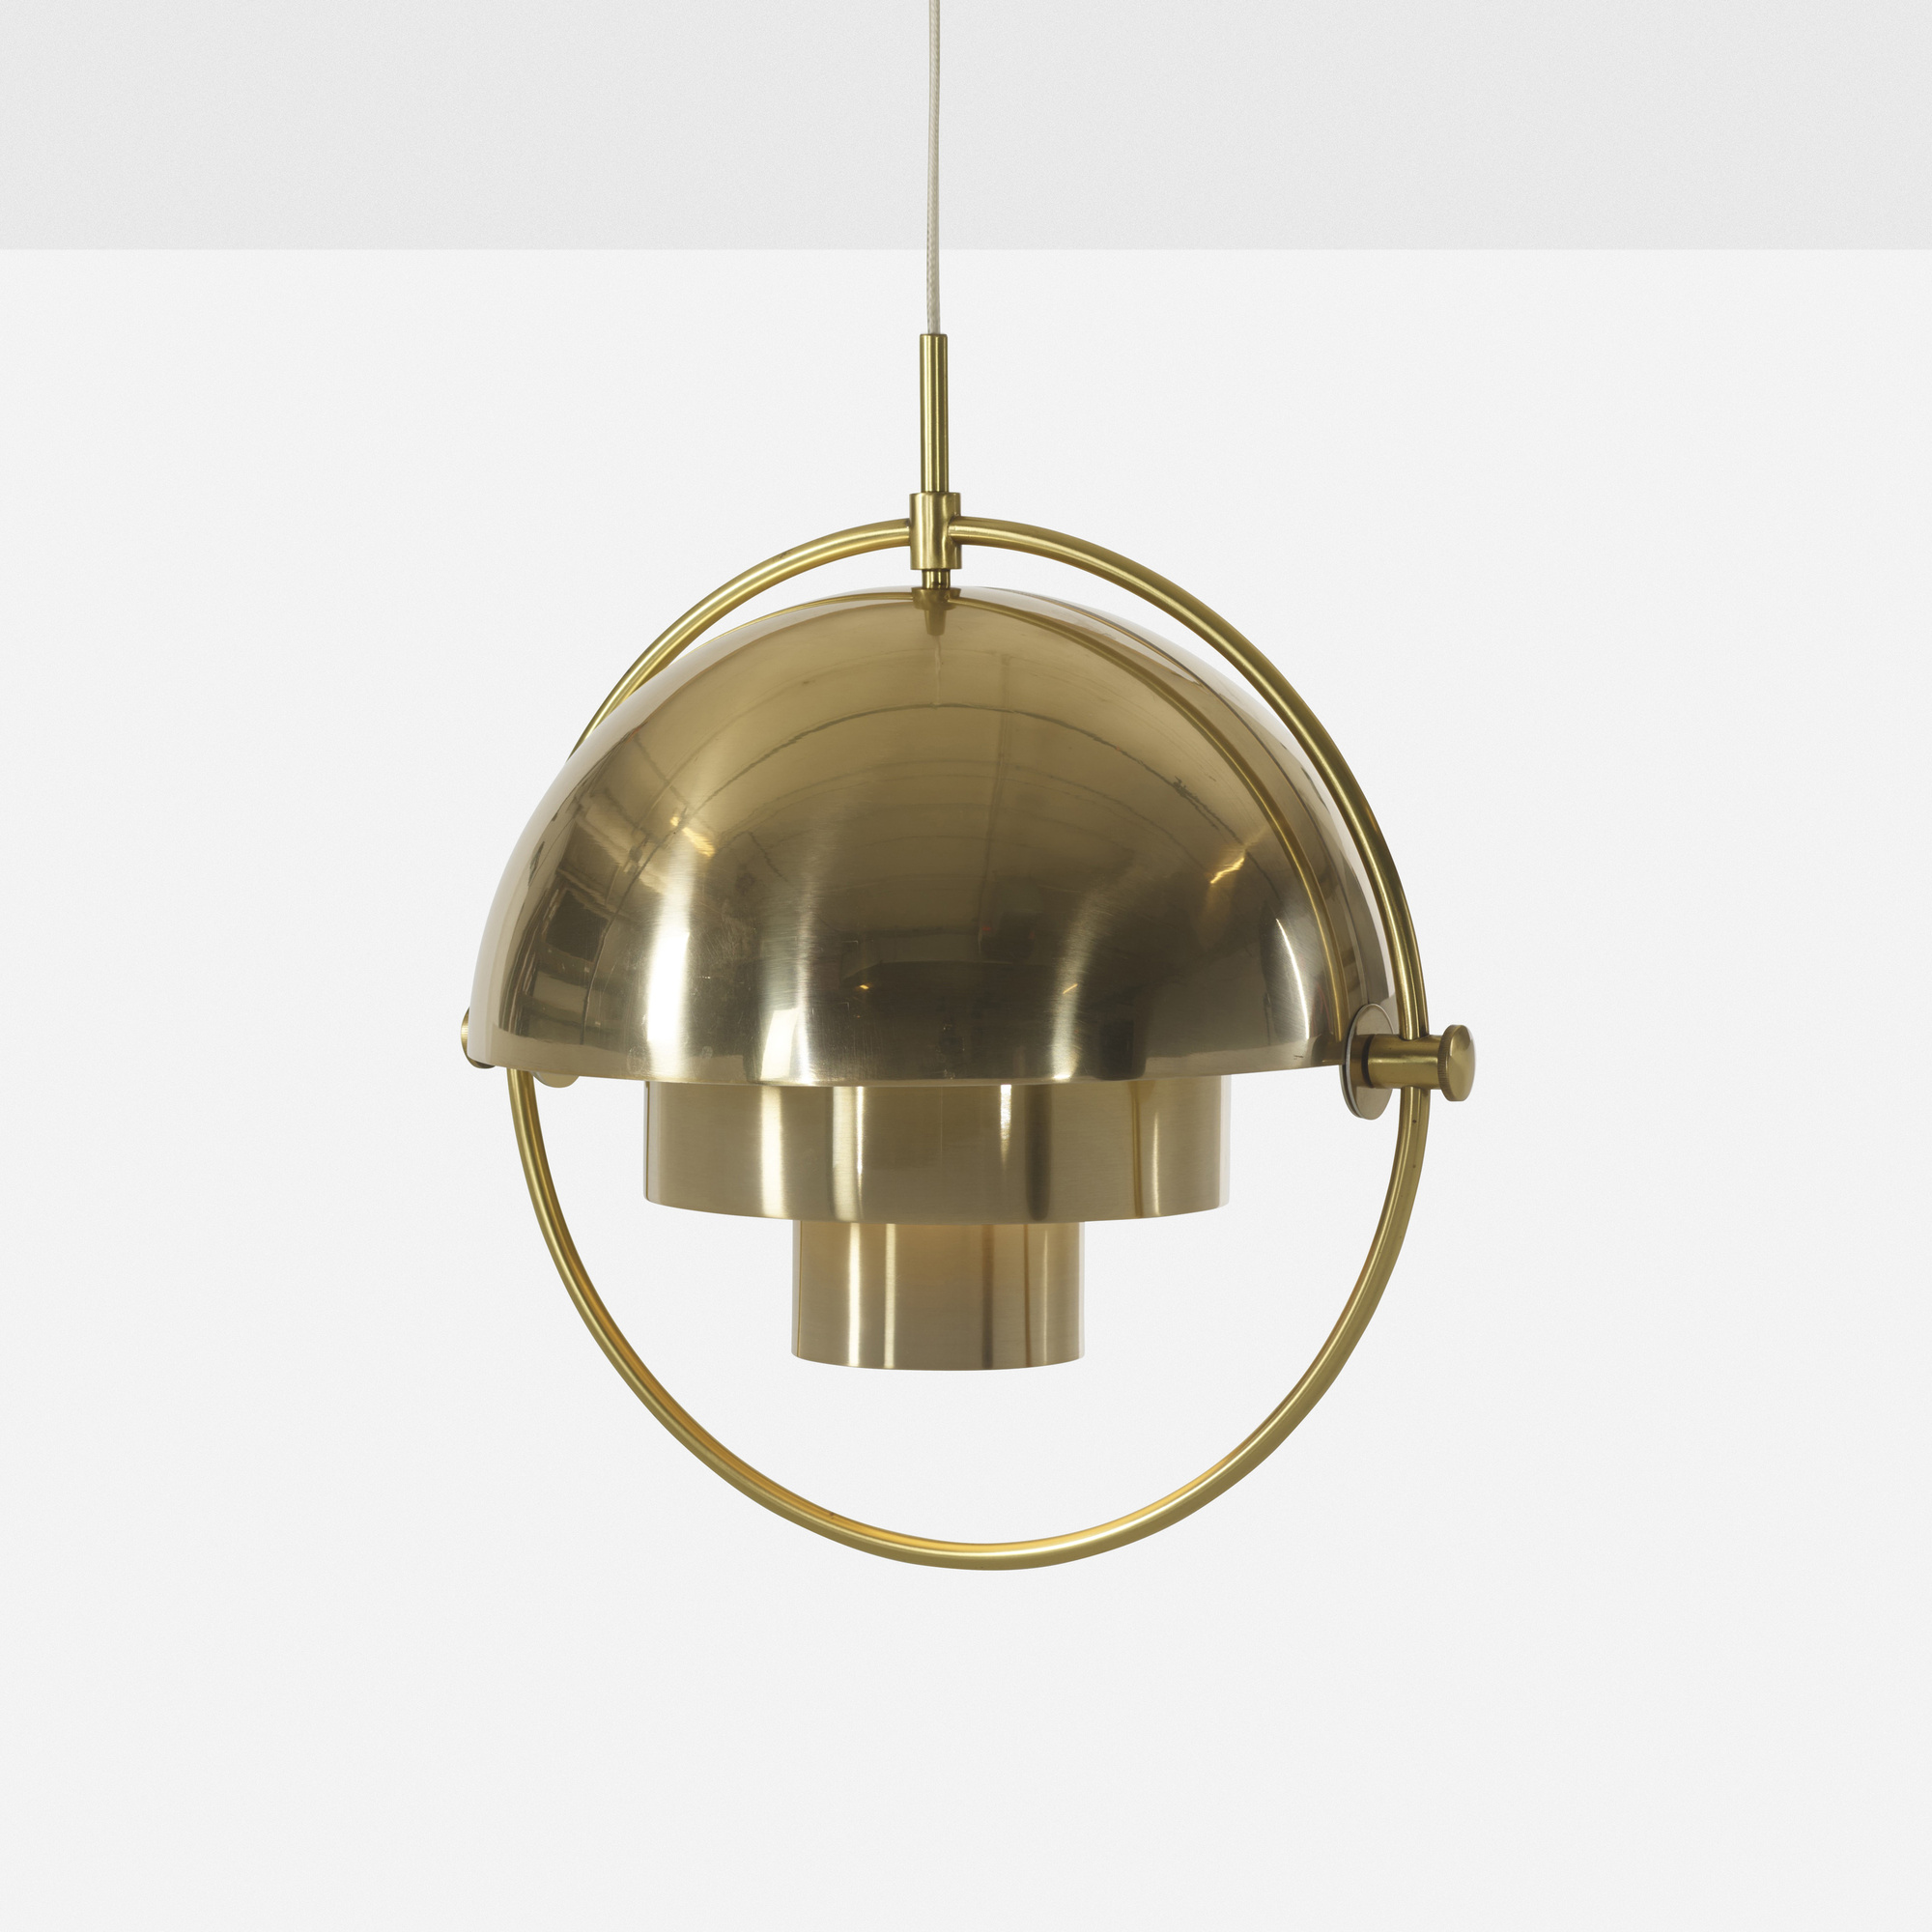 225: Louis Weisdorf / Multi-Lite pendant lamp (2 of 5)